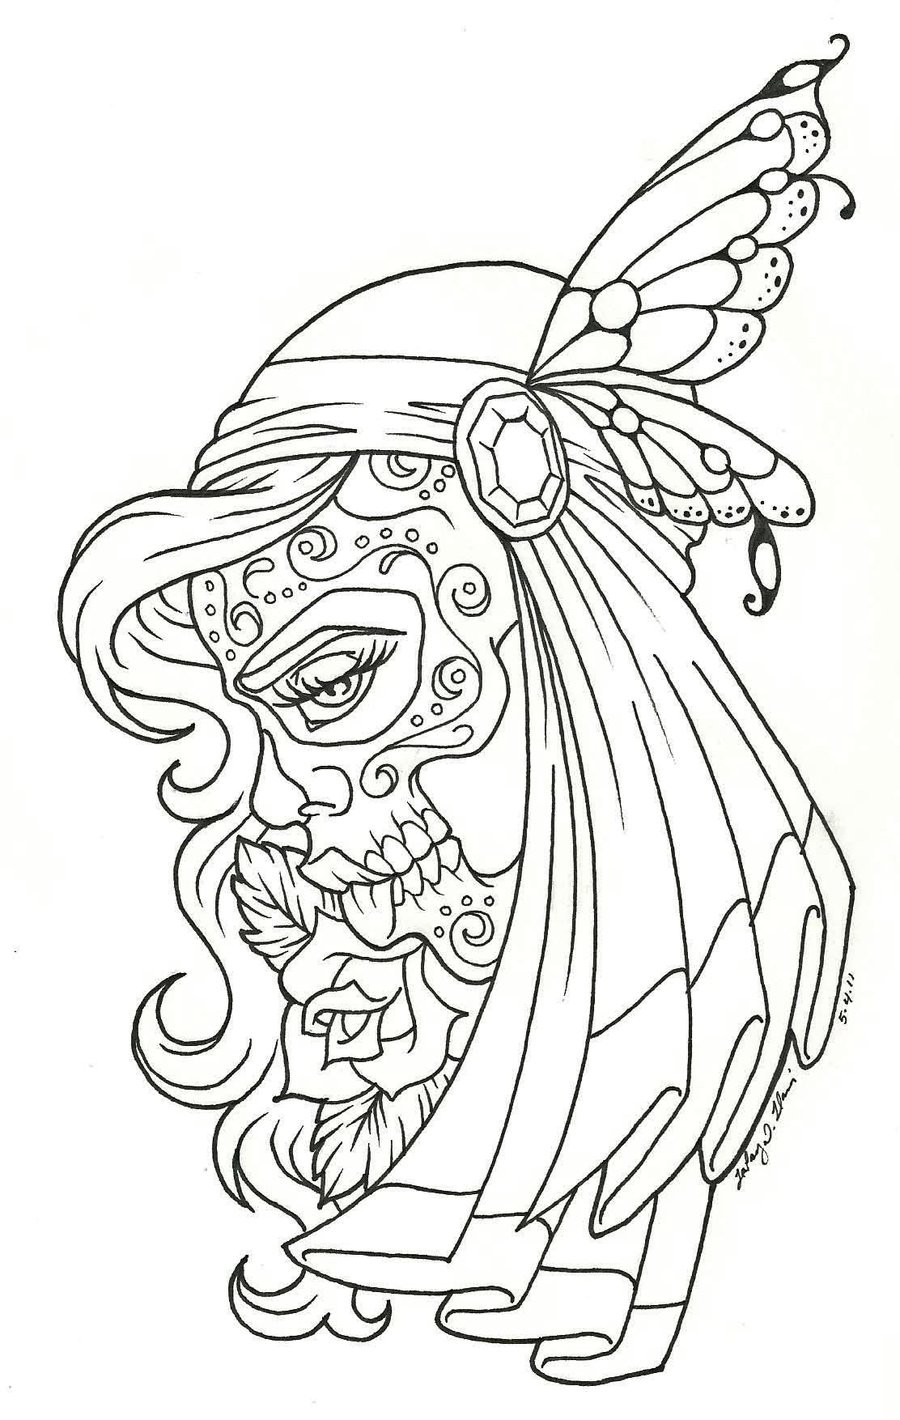 Uncategorized Day Of The Dead Coloring free printable day of the dead coloring pages best coloring